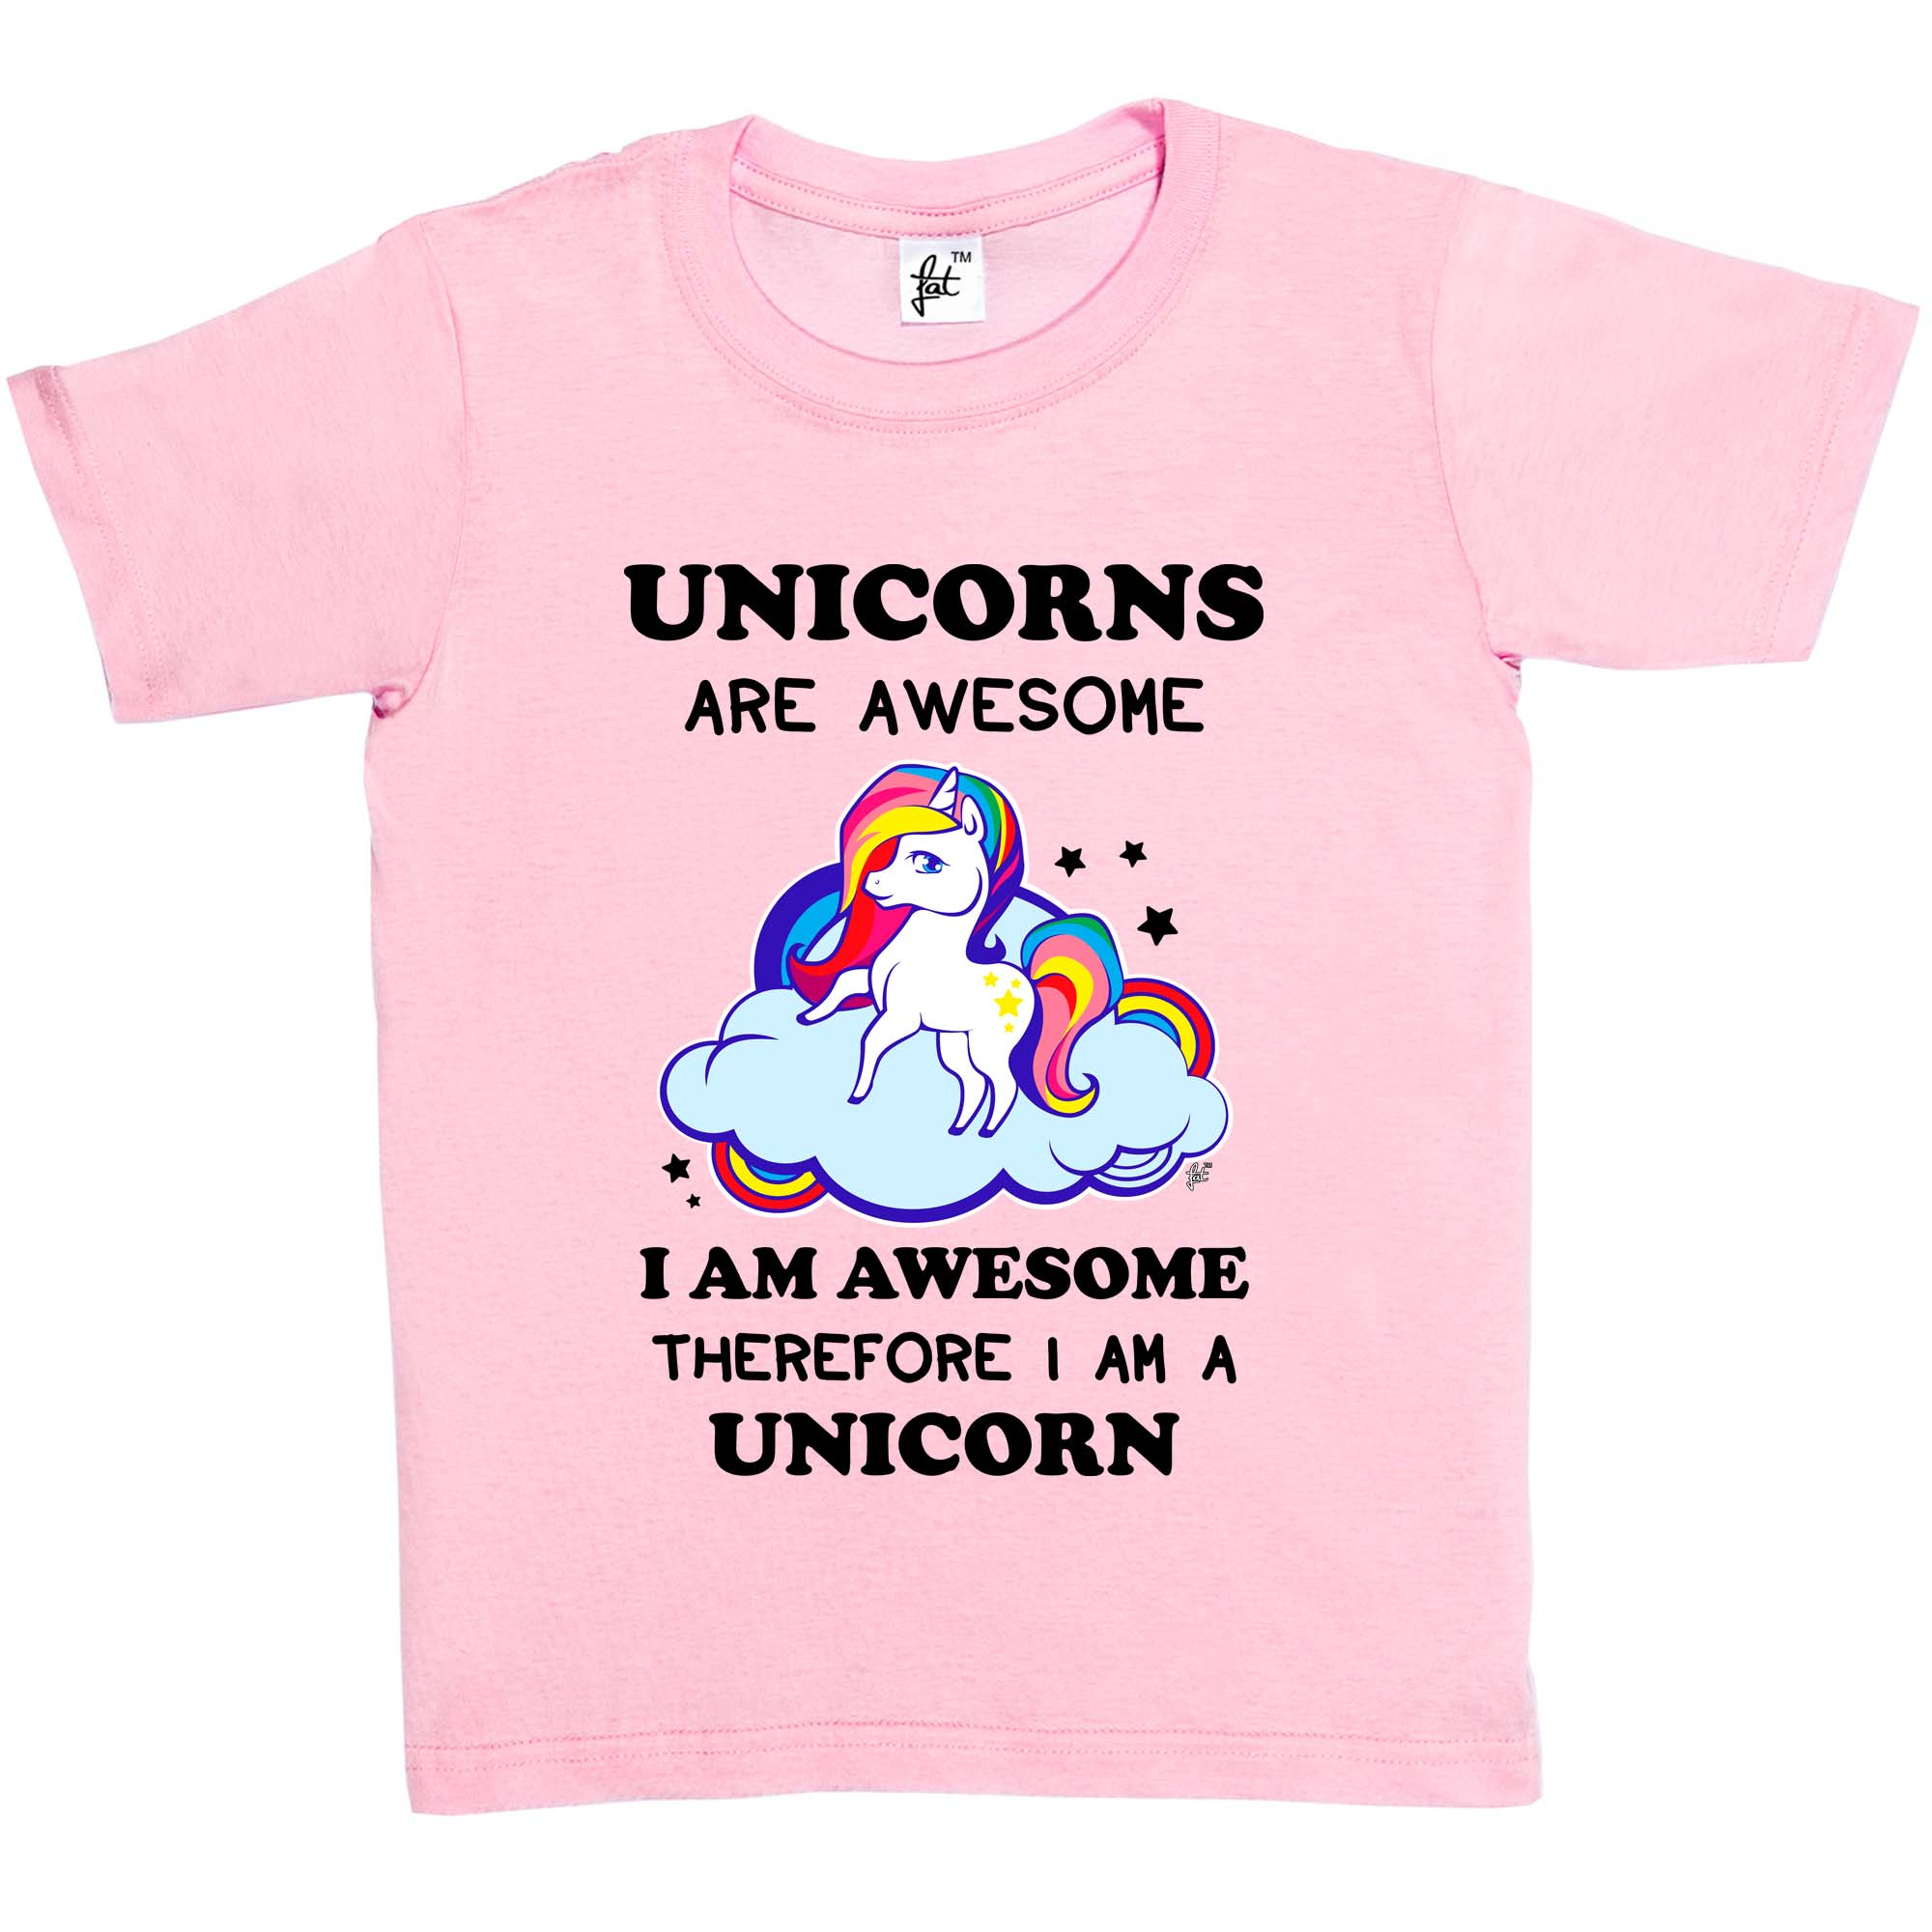 unicorns are awesome so am i therefore i 39 m a unicorn kids girls t shirt ebay. Black Bedroom Furniture Sets. Home Design Ideas